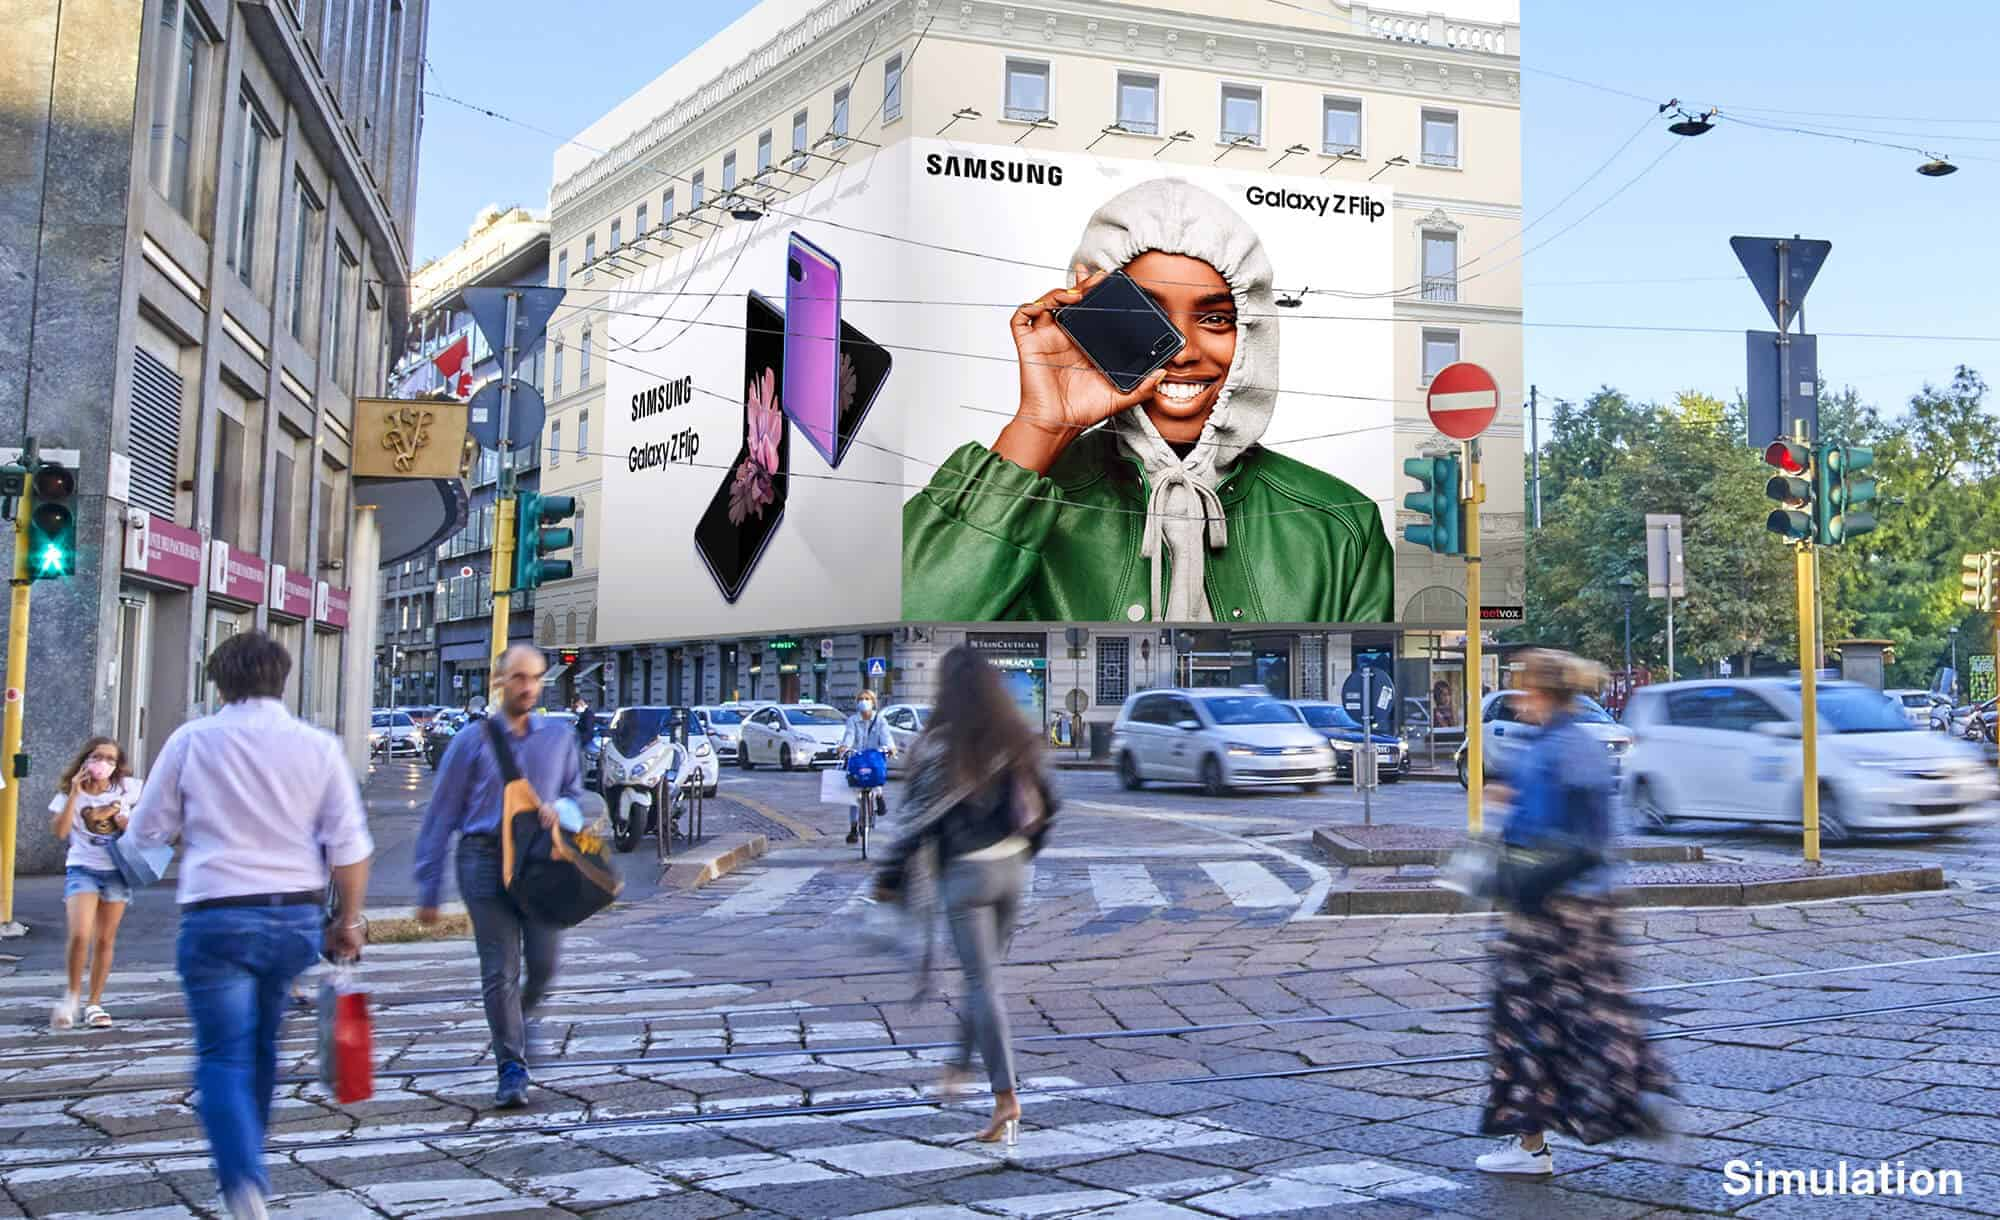 Maxi Affisione a Milano in Piazza Cavour 5 con Samsung (Technology)